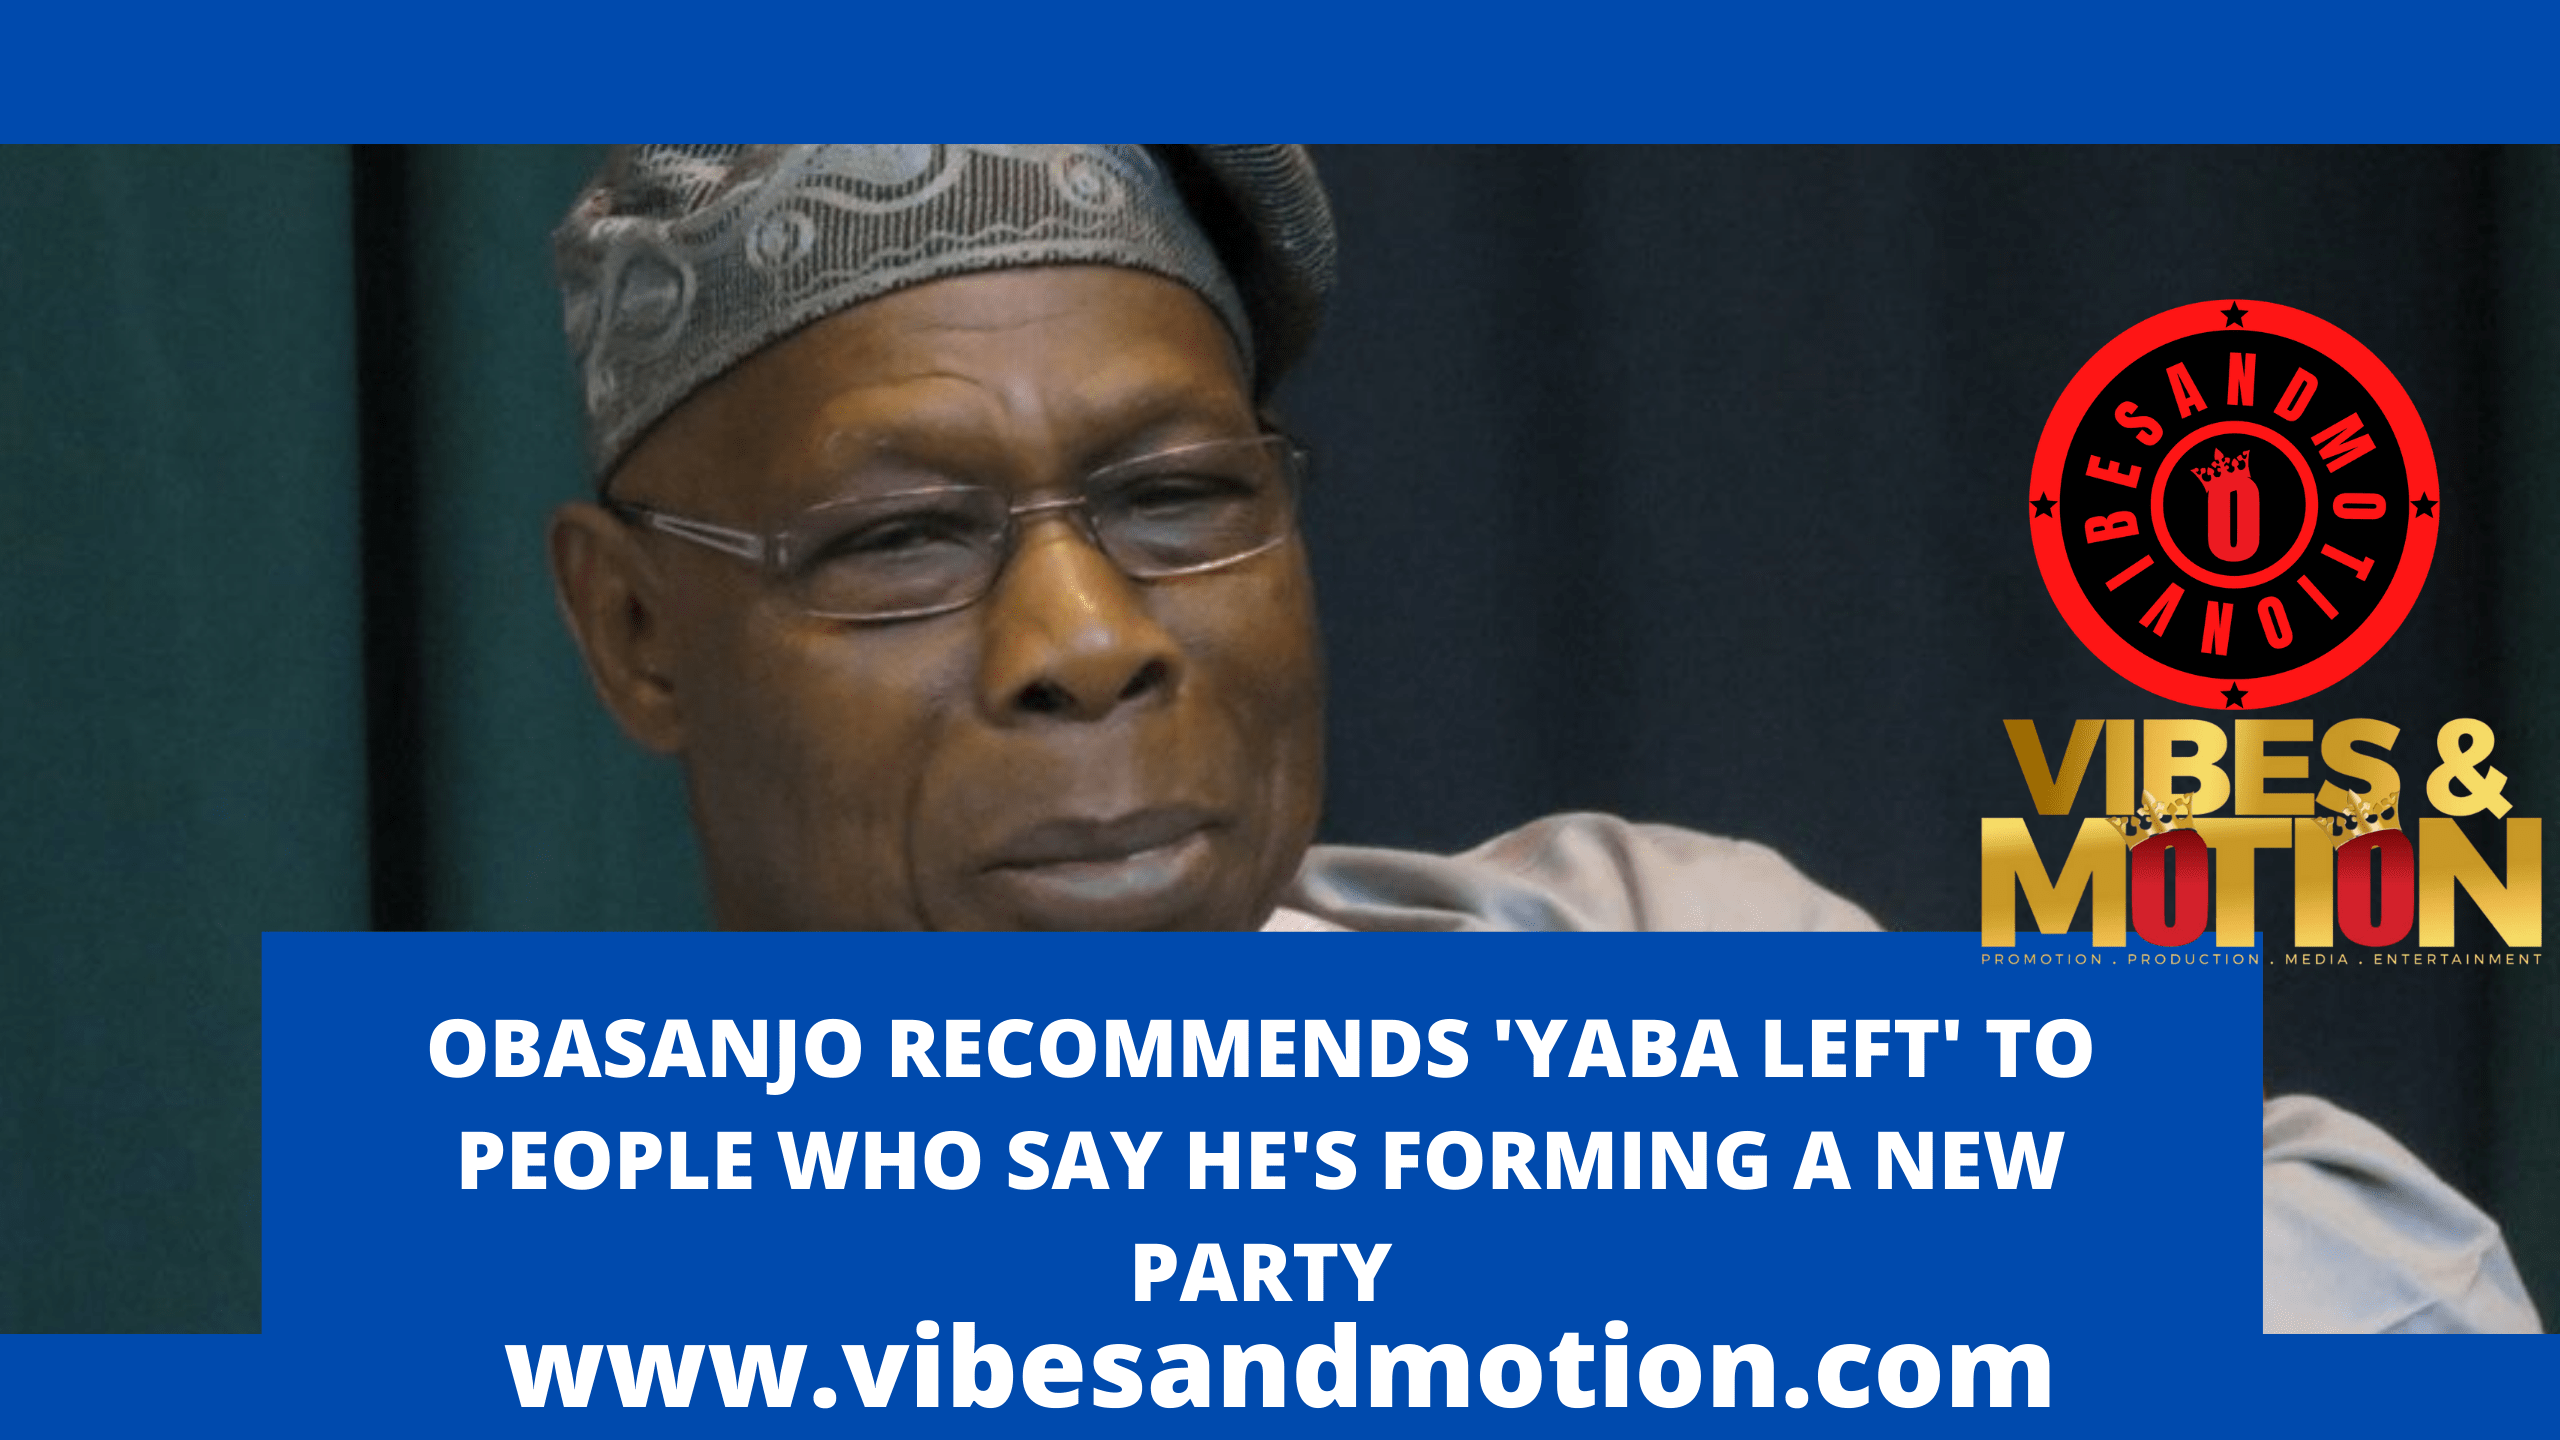 OBASANJO RECOMMENDS 'YABA LEFT' TO PEOPLE WHO SAY HE'S FORMING A NEW PARTY